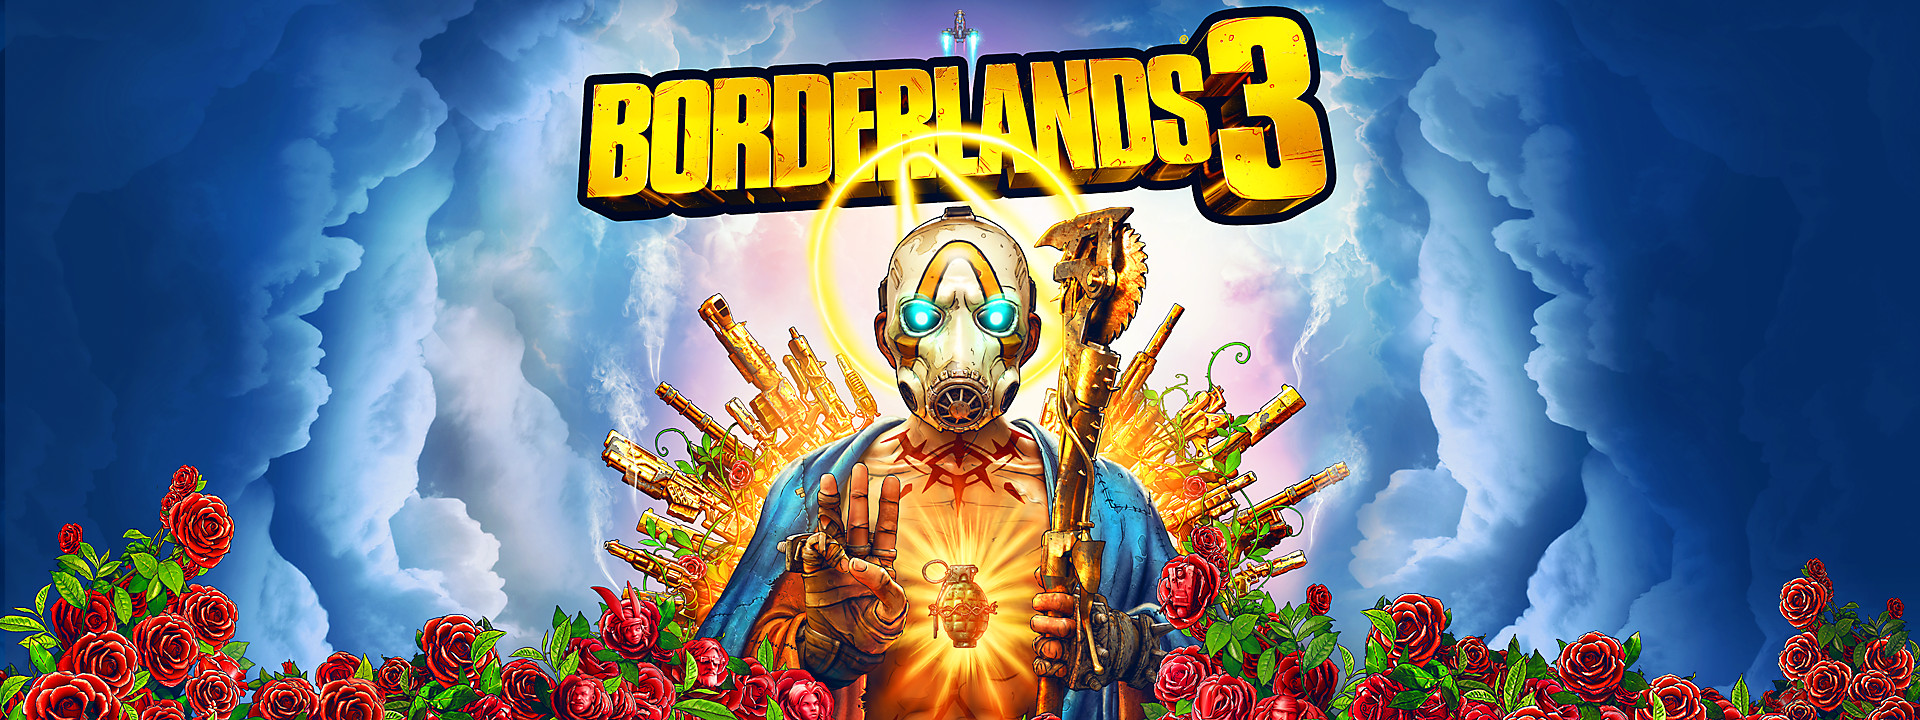 Borderlands 3 Feels Like a Return to Form For the Series